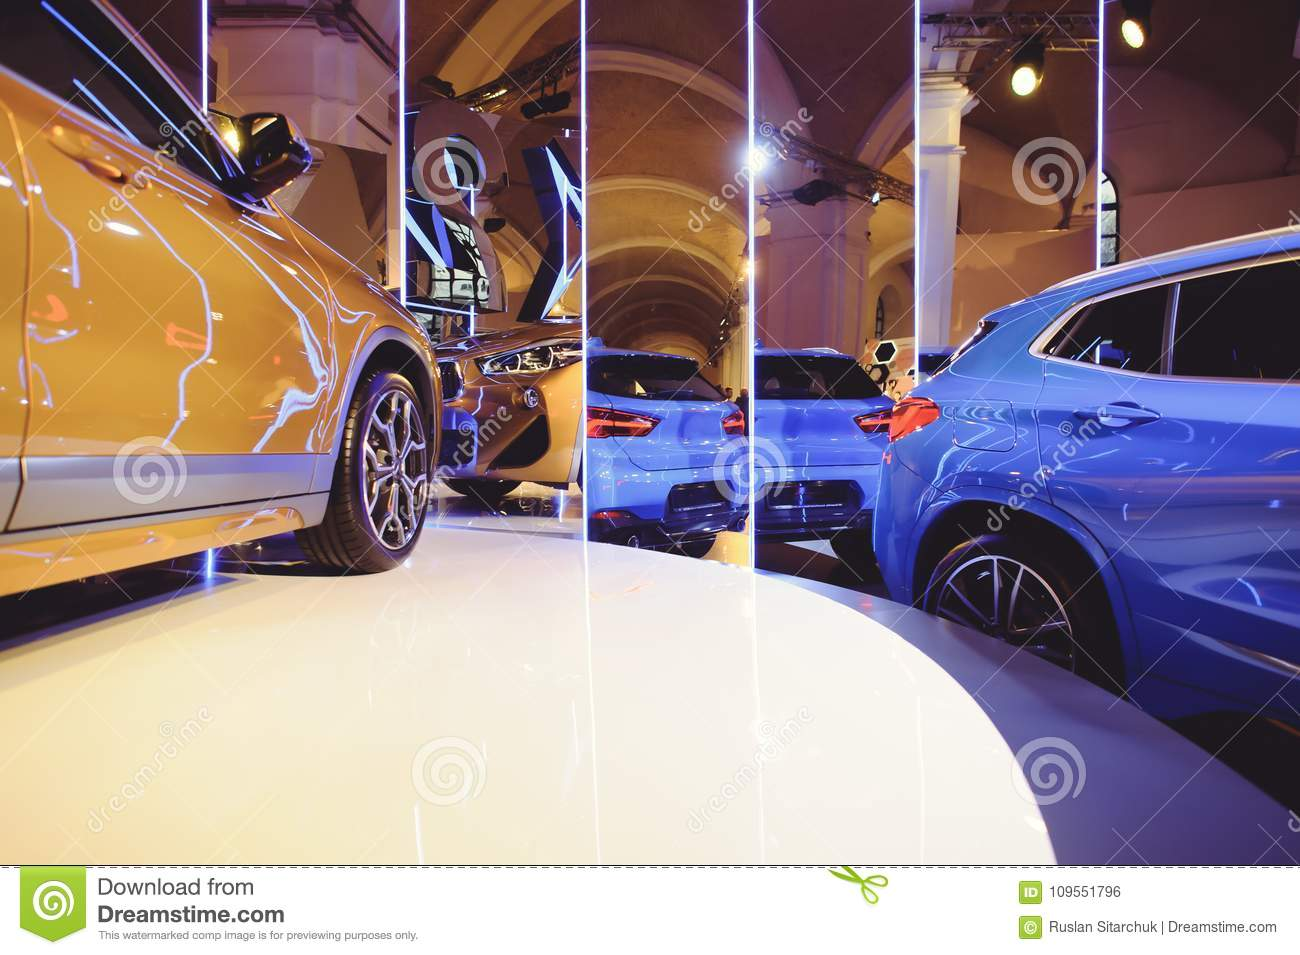 Fashionable bright auto show A number of new cars parked in the car dealers` warehouse, modern design of the room with mirrors